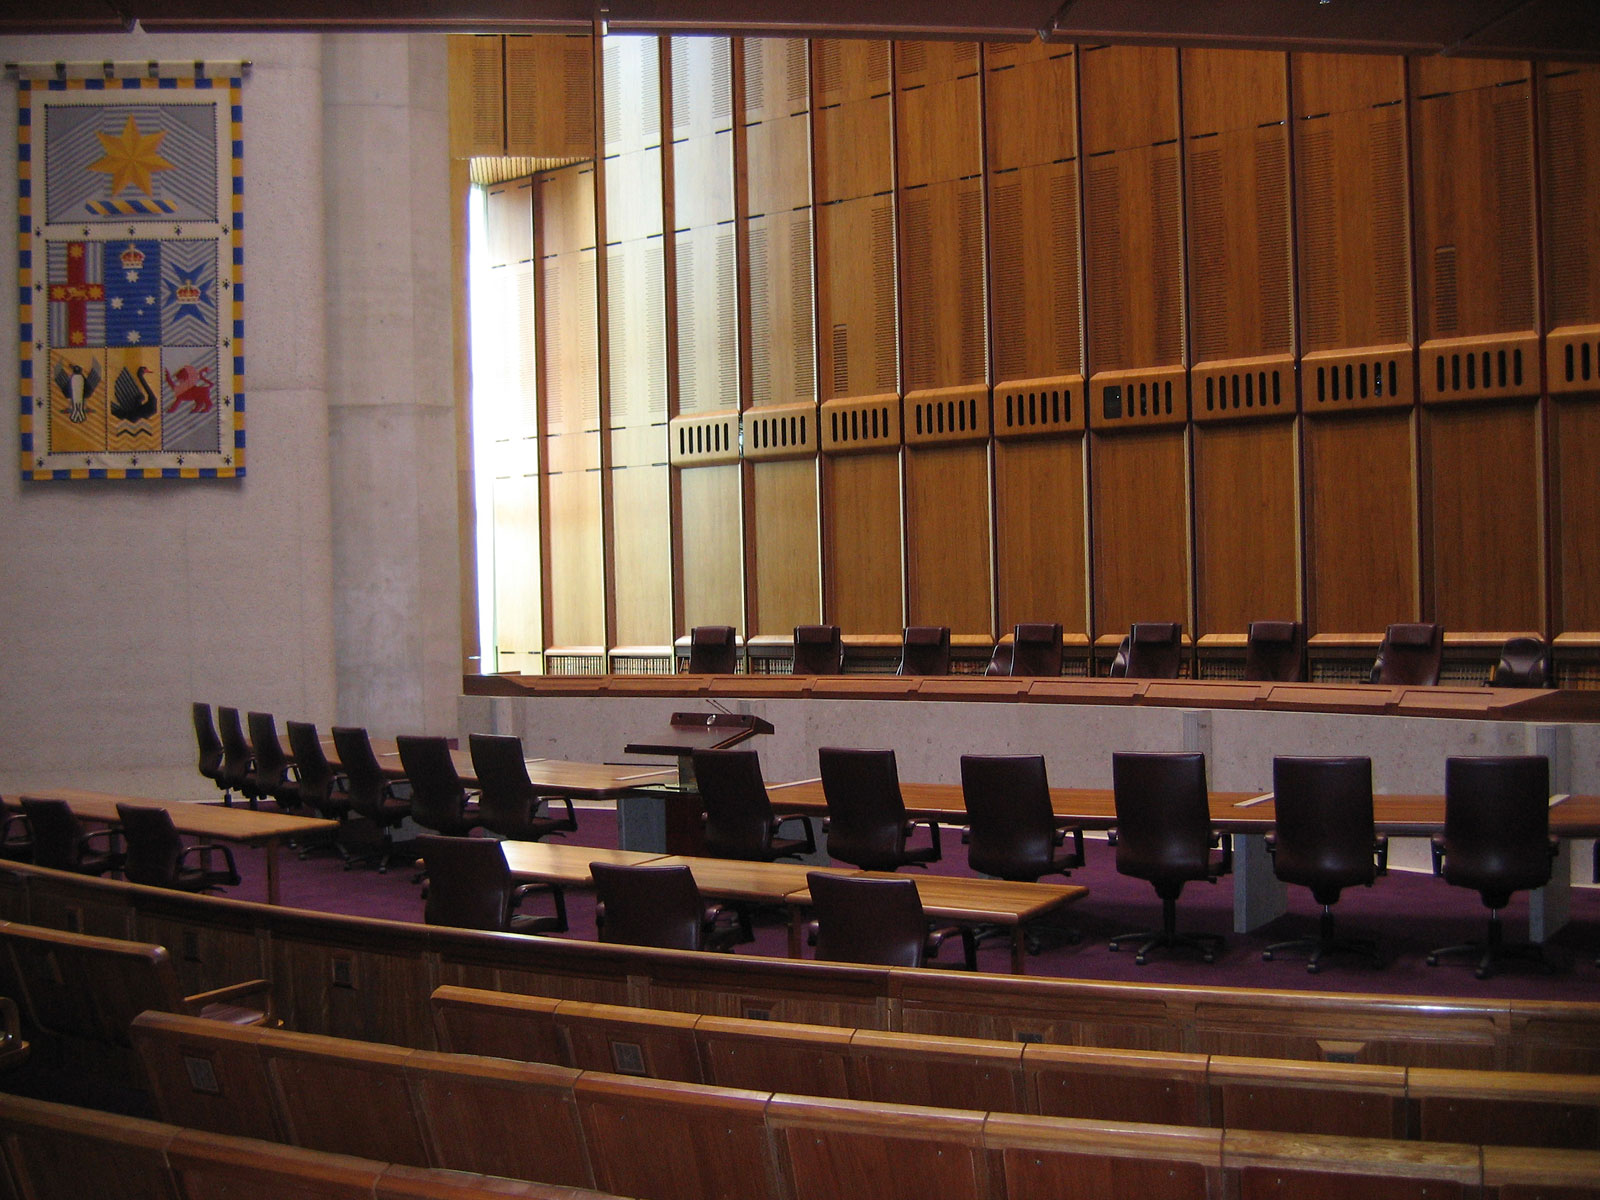 File:High court of Australia - court 1.jpg - Wikimedia Commons Pictures Of Courts